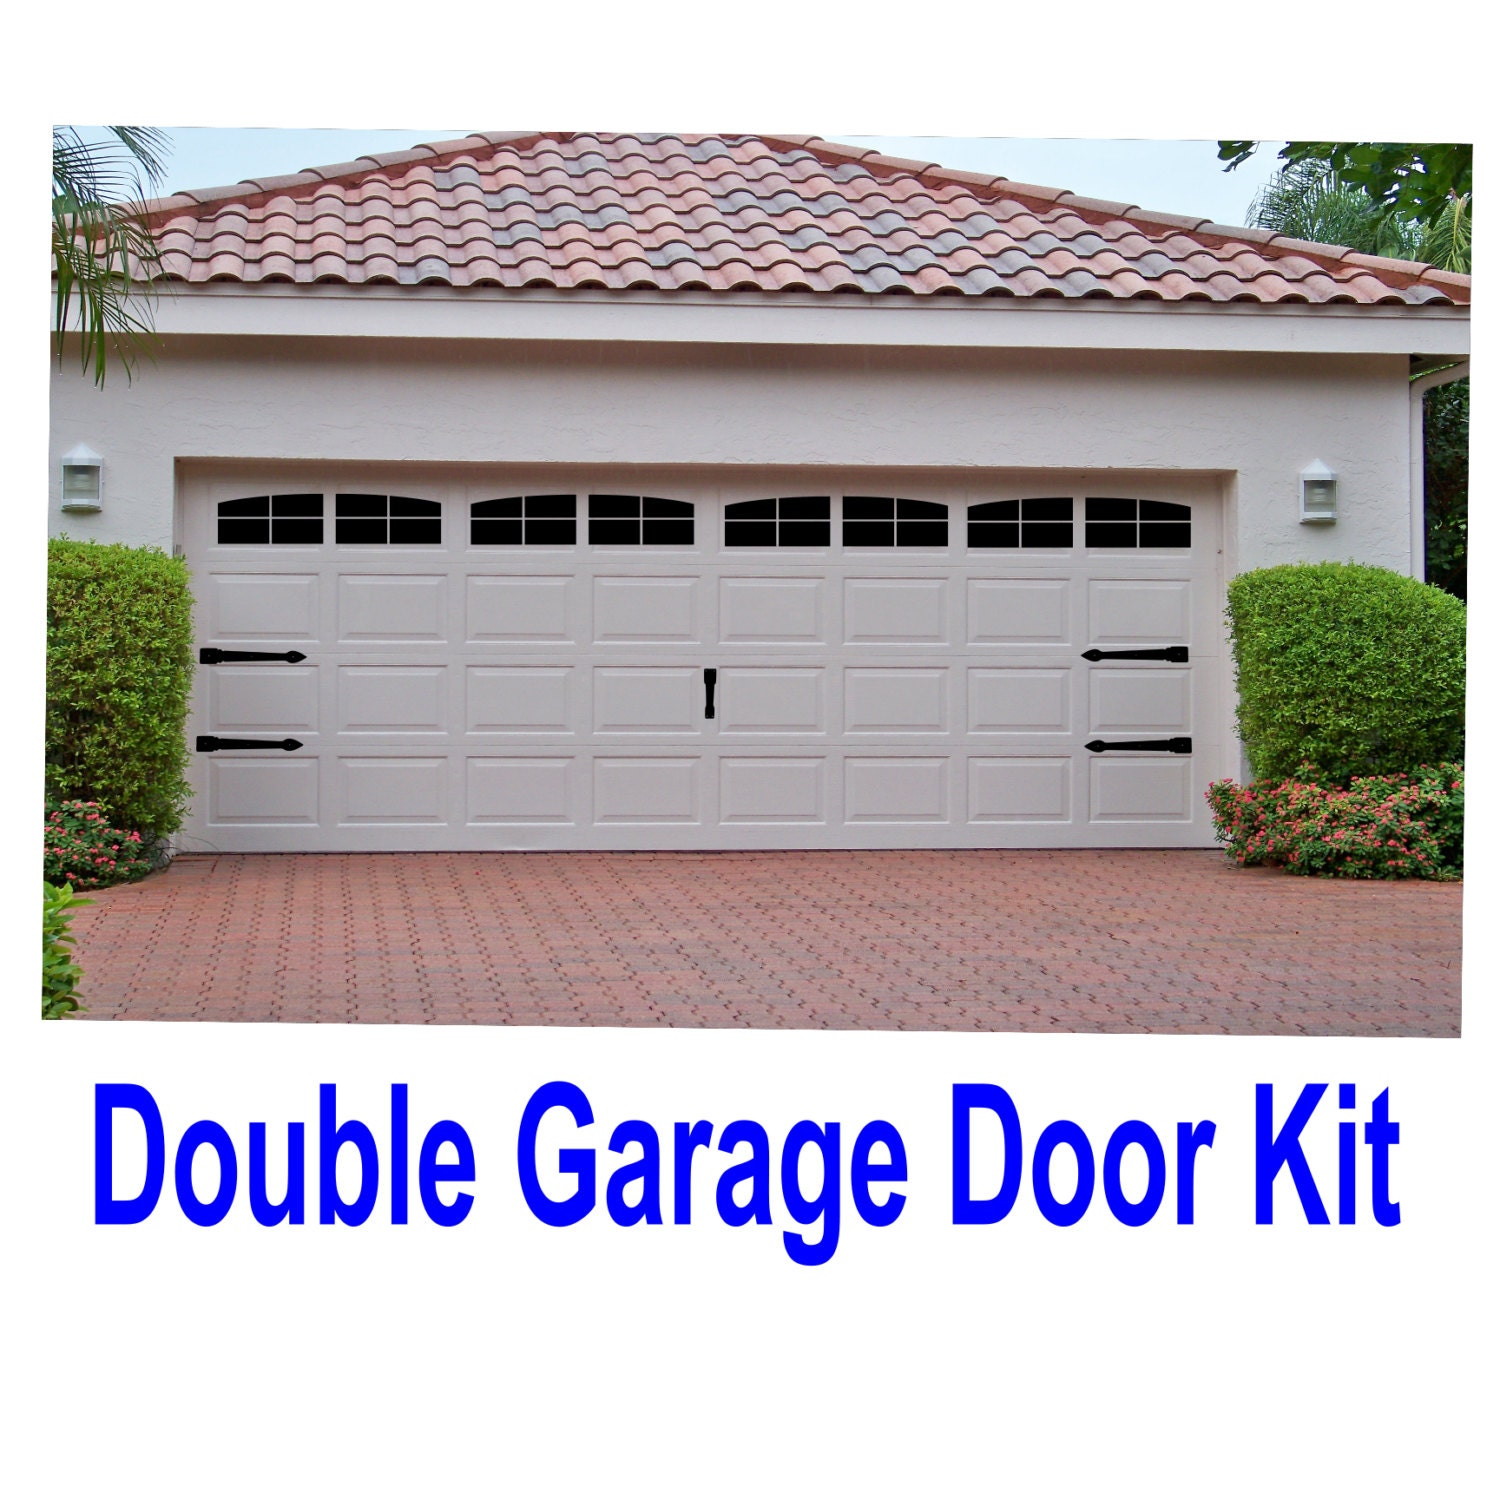 Garage Door Vinyl Window Decals: Carriage House Style Vinyl Garage Door Decal Kit Faux